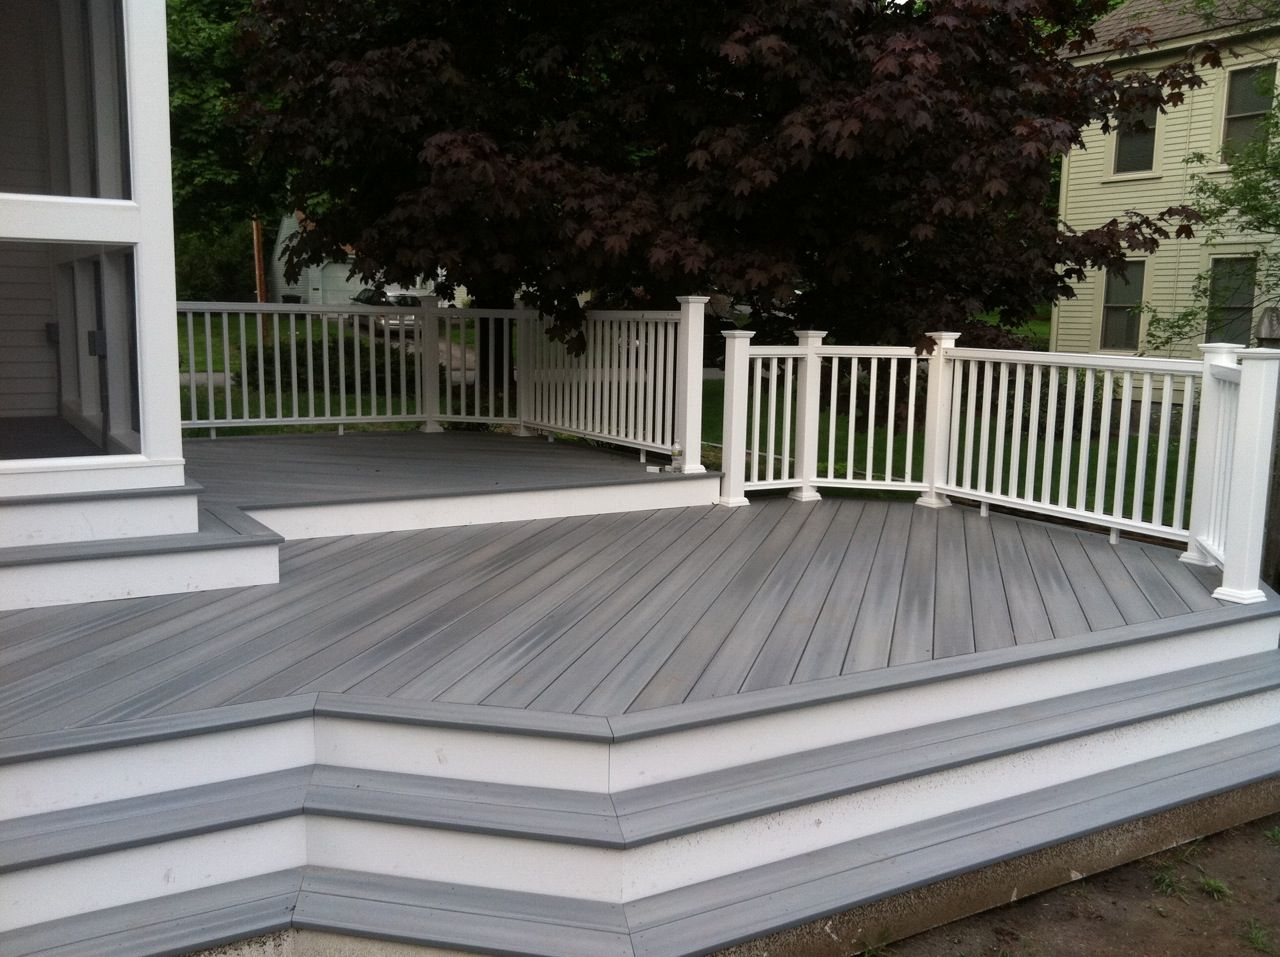 White Wooden Decking Terrace Google Search